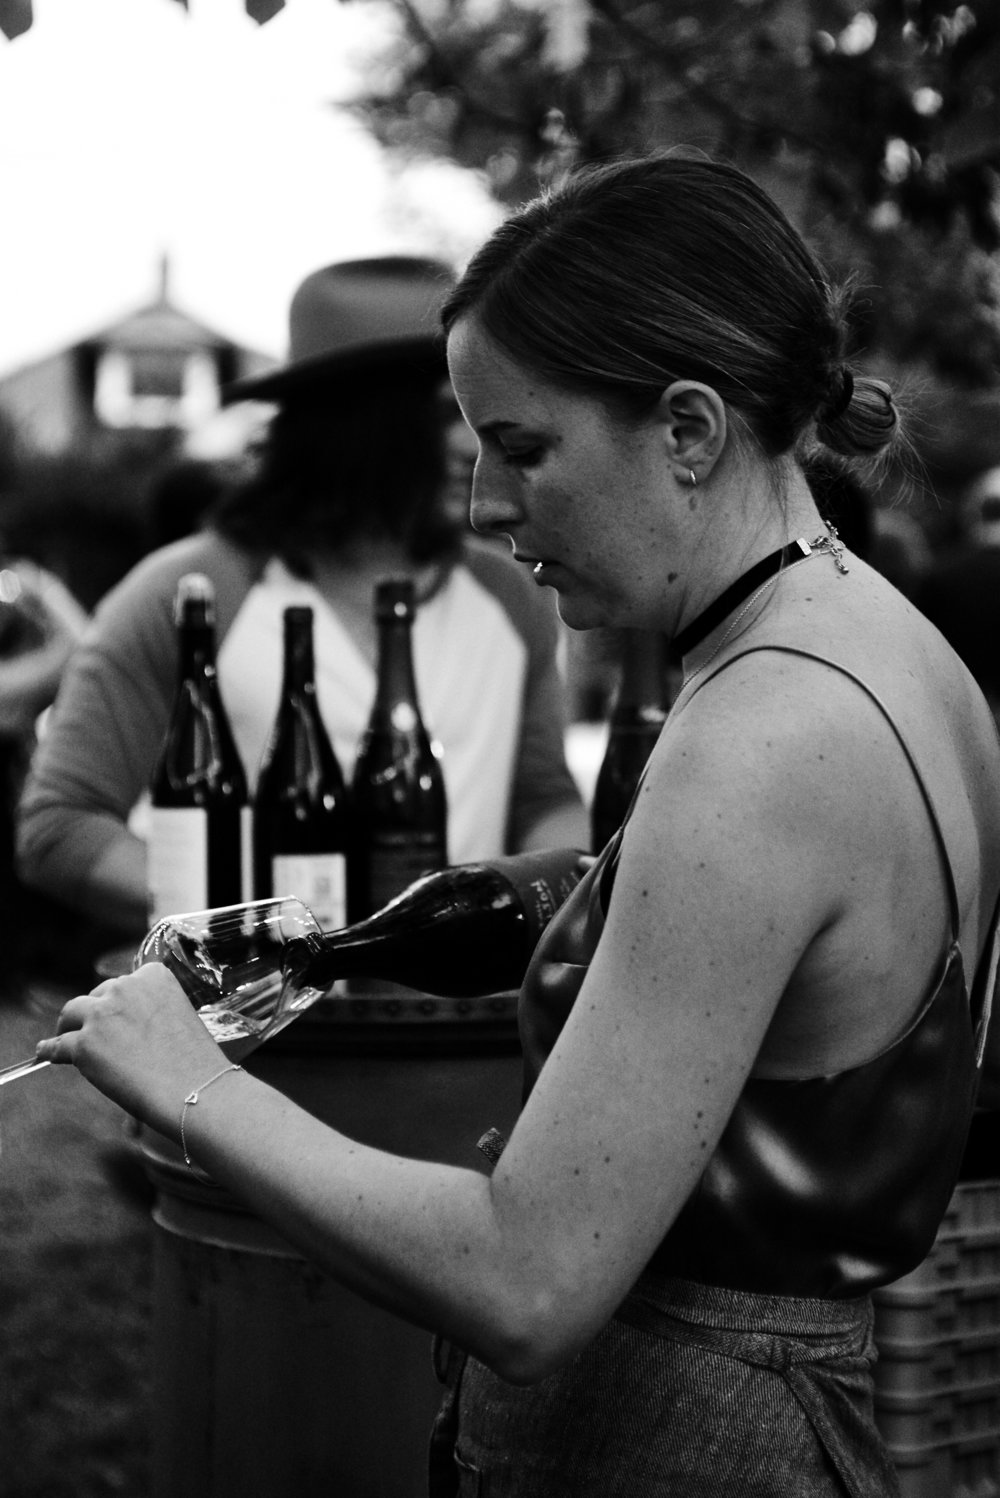 HR-Allie-Wine-bw.jpg